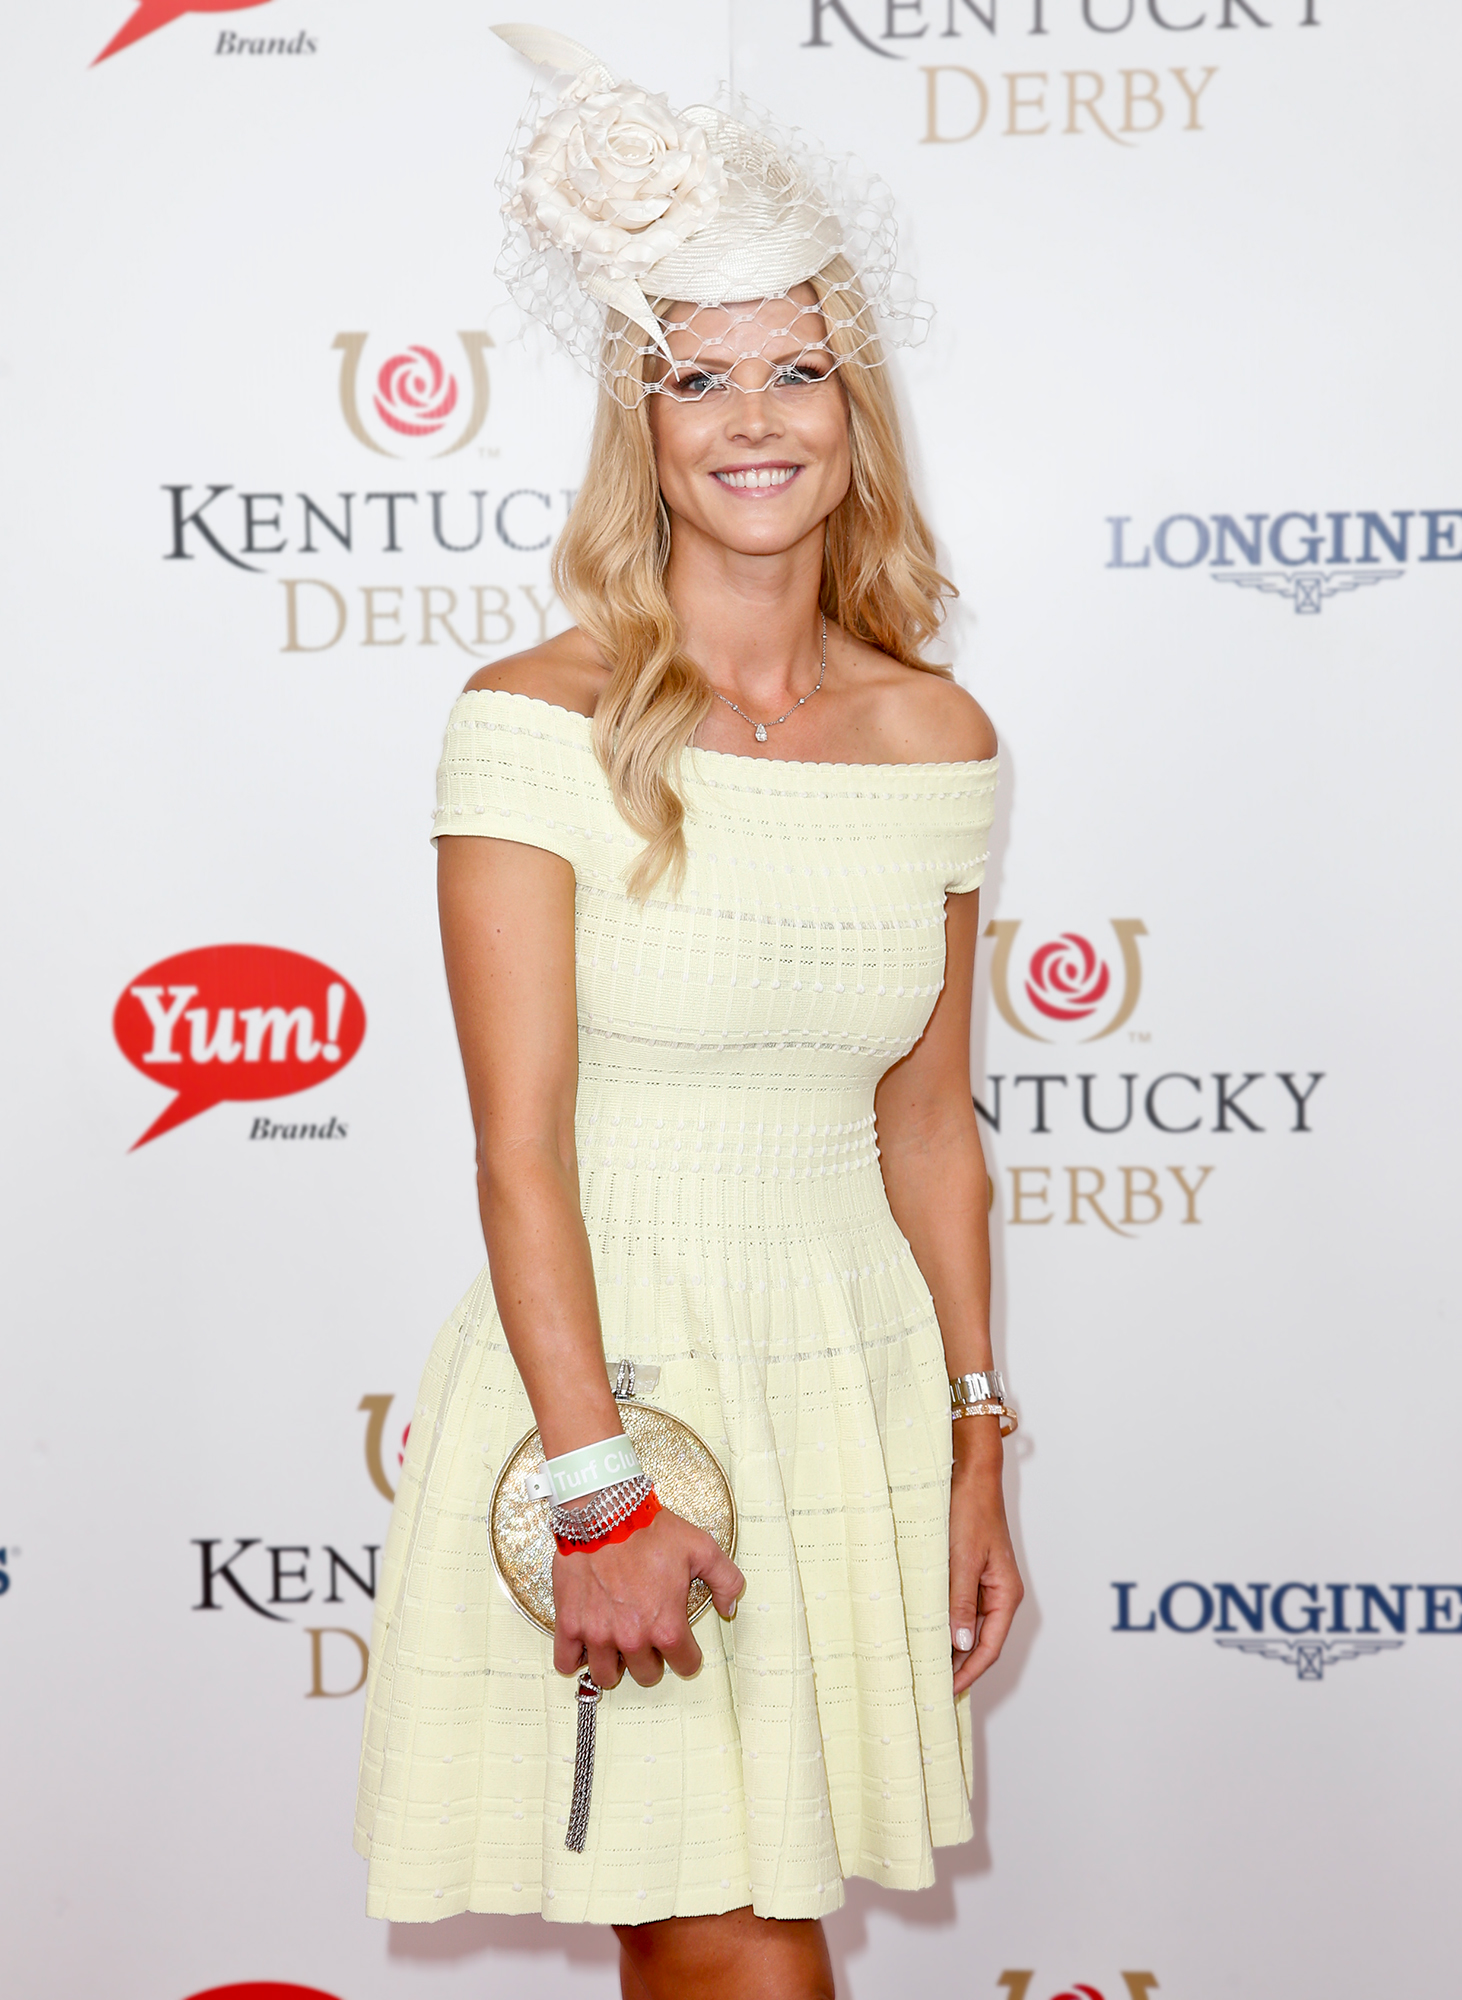 Elin Nordegren Gives Birth, Welcomes 1st Child With Jordan ...